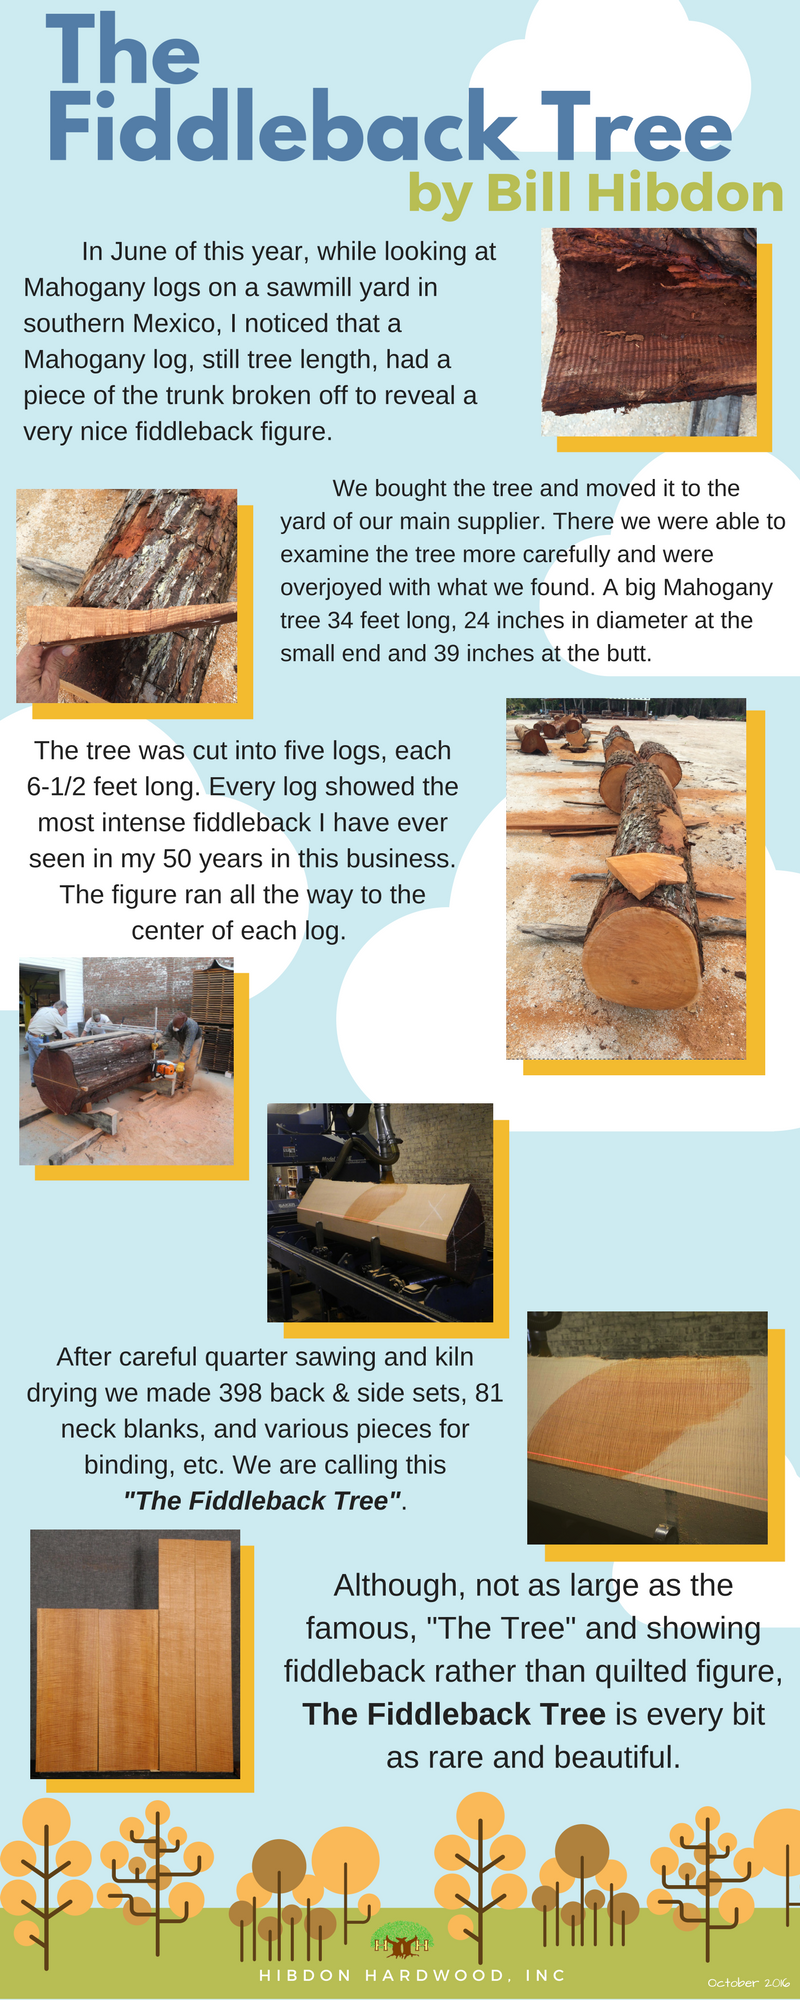 "In June of this year, while looking at Mahogany logs on a sawmill yard in southern Mexico, I noticed that a Mahogany log, still tree length, had a piece of the trunk broken off to reveal a very nice fiddleback figure. We bought the tree and moved it to the yard of our main supplier. There we were able to examine the tree more carefully and were overjoyed with what we found. A big Mahogany tree 34 feet long, 24 inches in diameter at the small end and 39 inches at the butt. The tree was cut into five logs, each 6-1/2 feet long. Every log showed the most intense fiddleback I have ever seen in my 50 years in this business. The figure ran all the way to the center of each log. After careful quarter sawing and kiln drying we made 398 back & side sets, 81 neck blanks, and various pieces for binding, etc. We are calling this  ""The Fiddleback Tree"". Although, not as large as the famous, ""The Tree"" and showing fiddleback rather than quilted figure, The Fiddleback Tree is every bit as rare and beautiful."